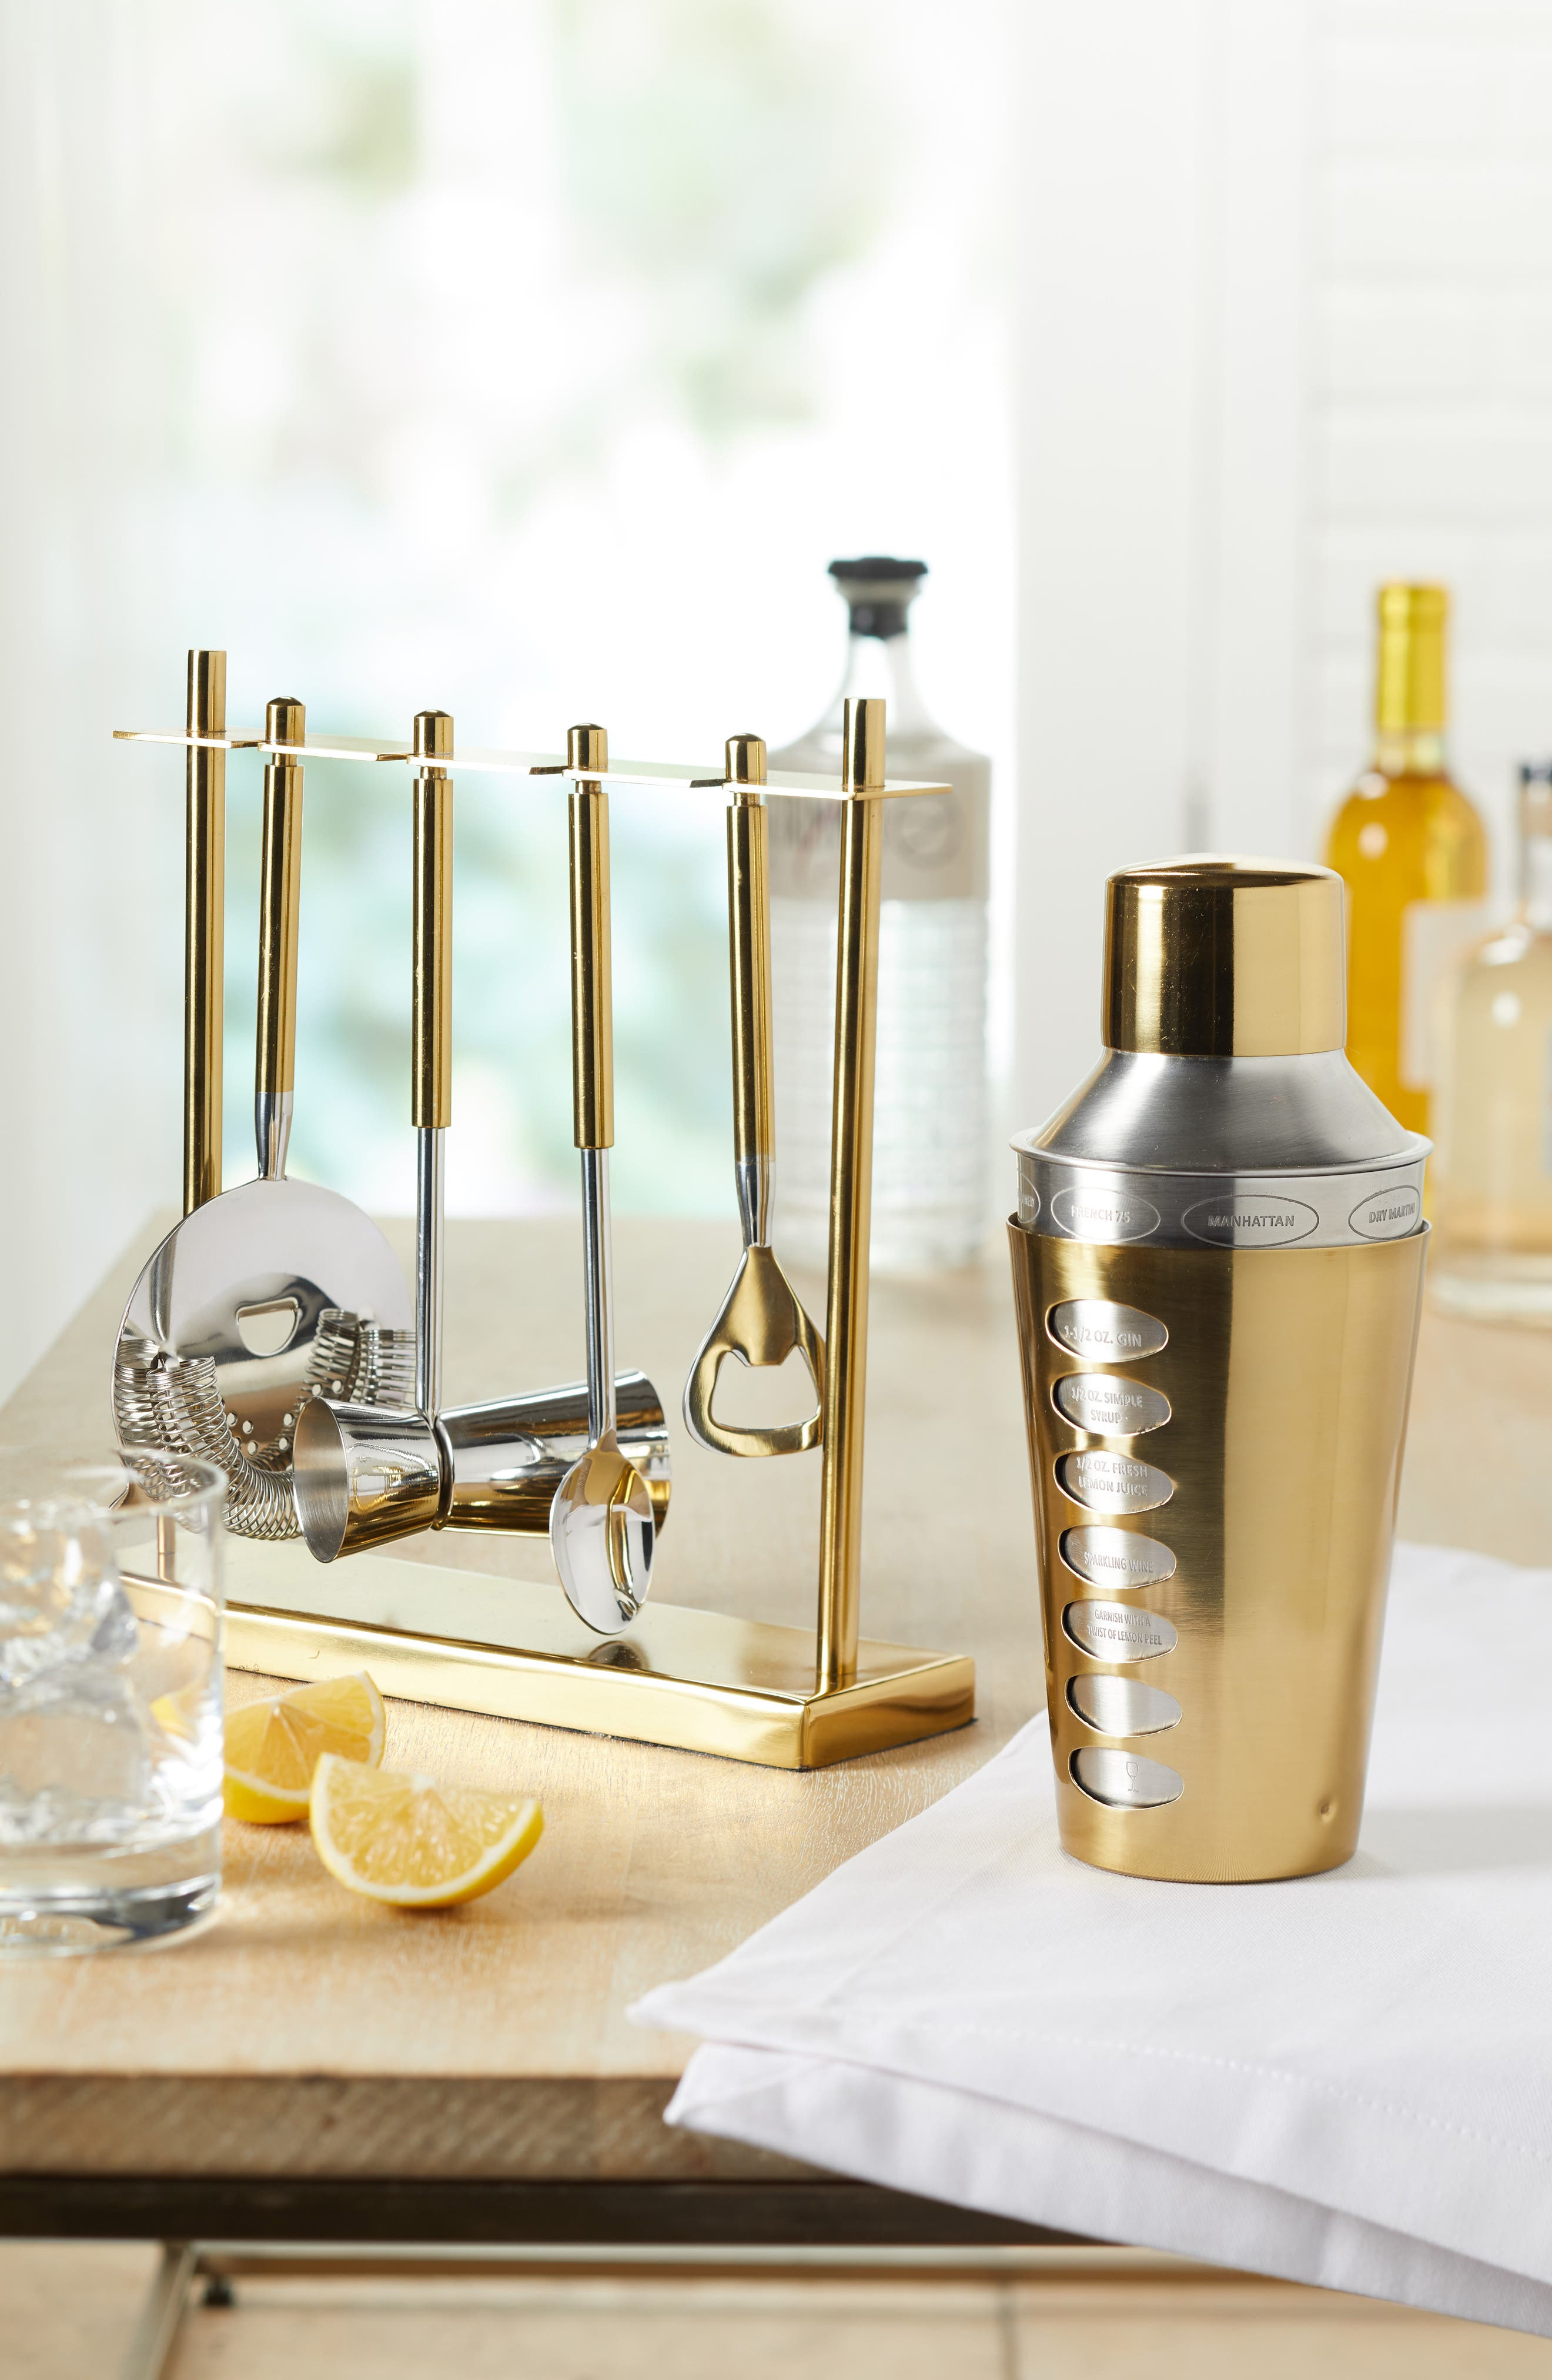 Nordstrom 5-Piece Stainless Steel Bar Tool Set,                             Alternate thumbnail 2, color,                             GOLD